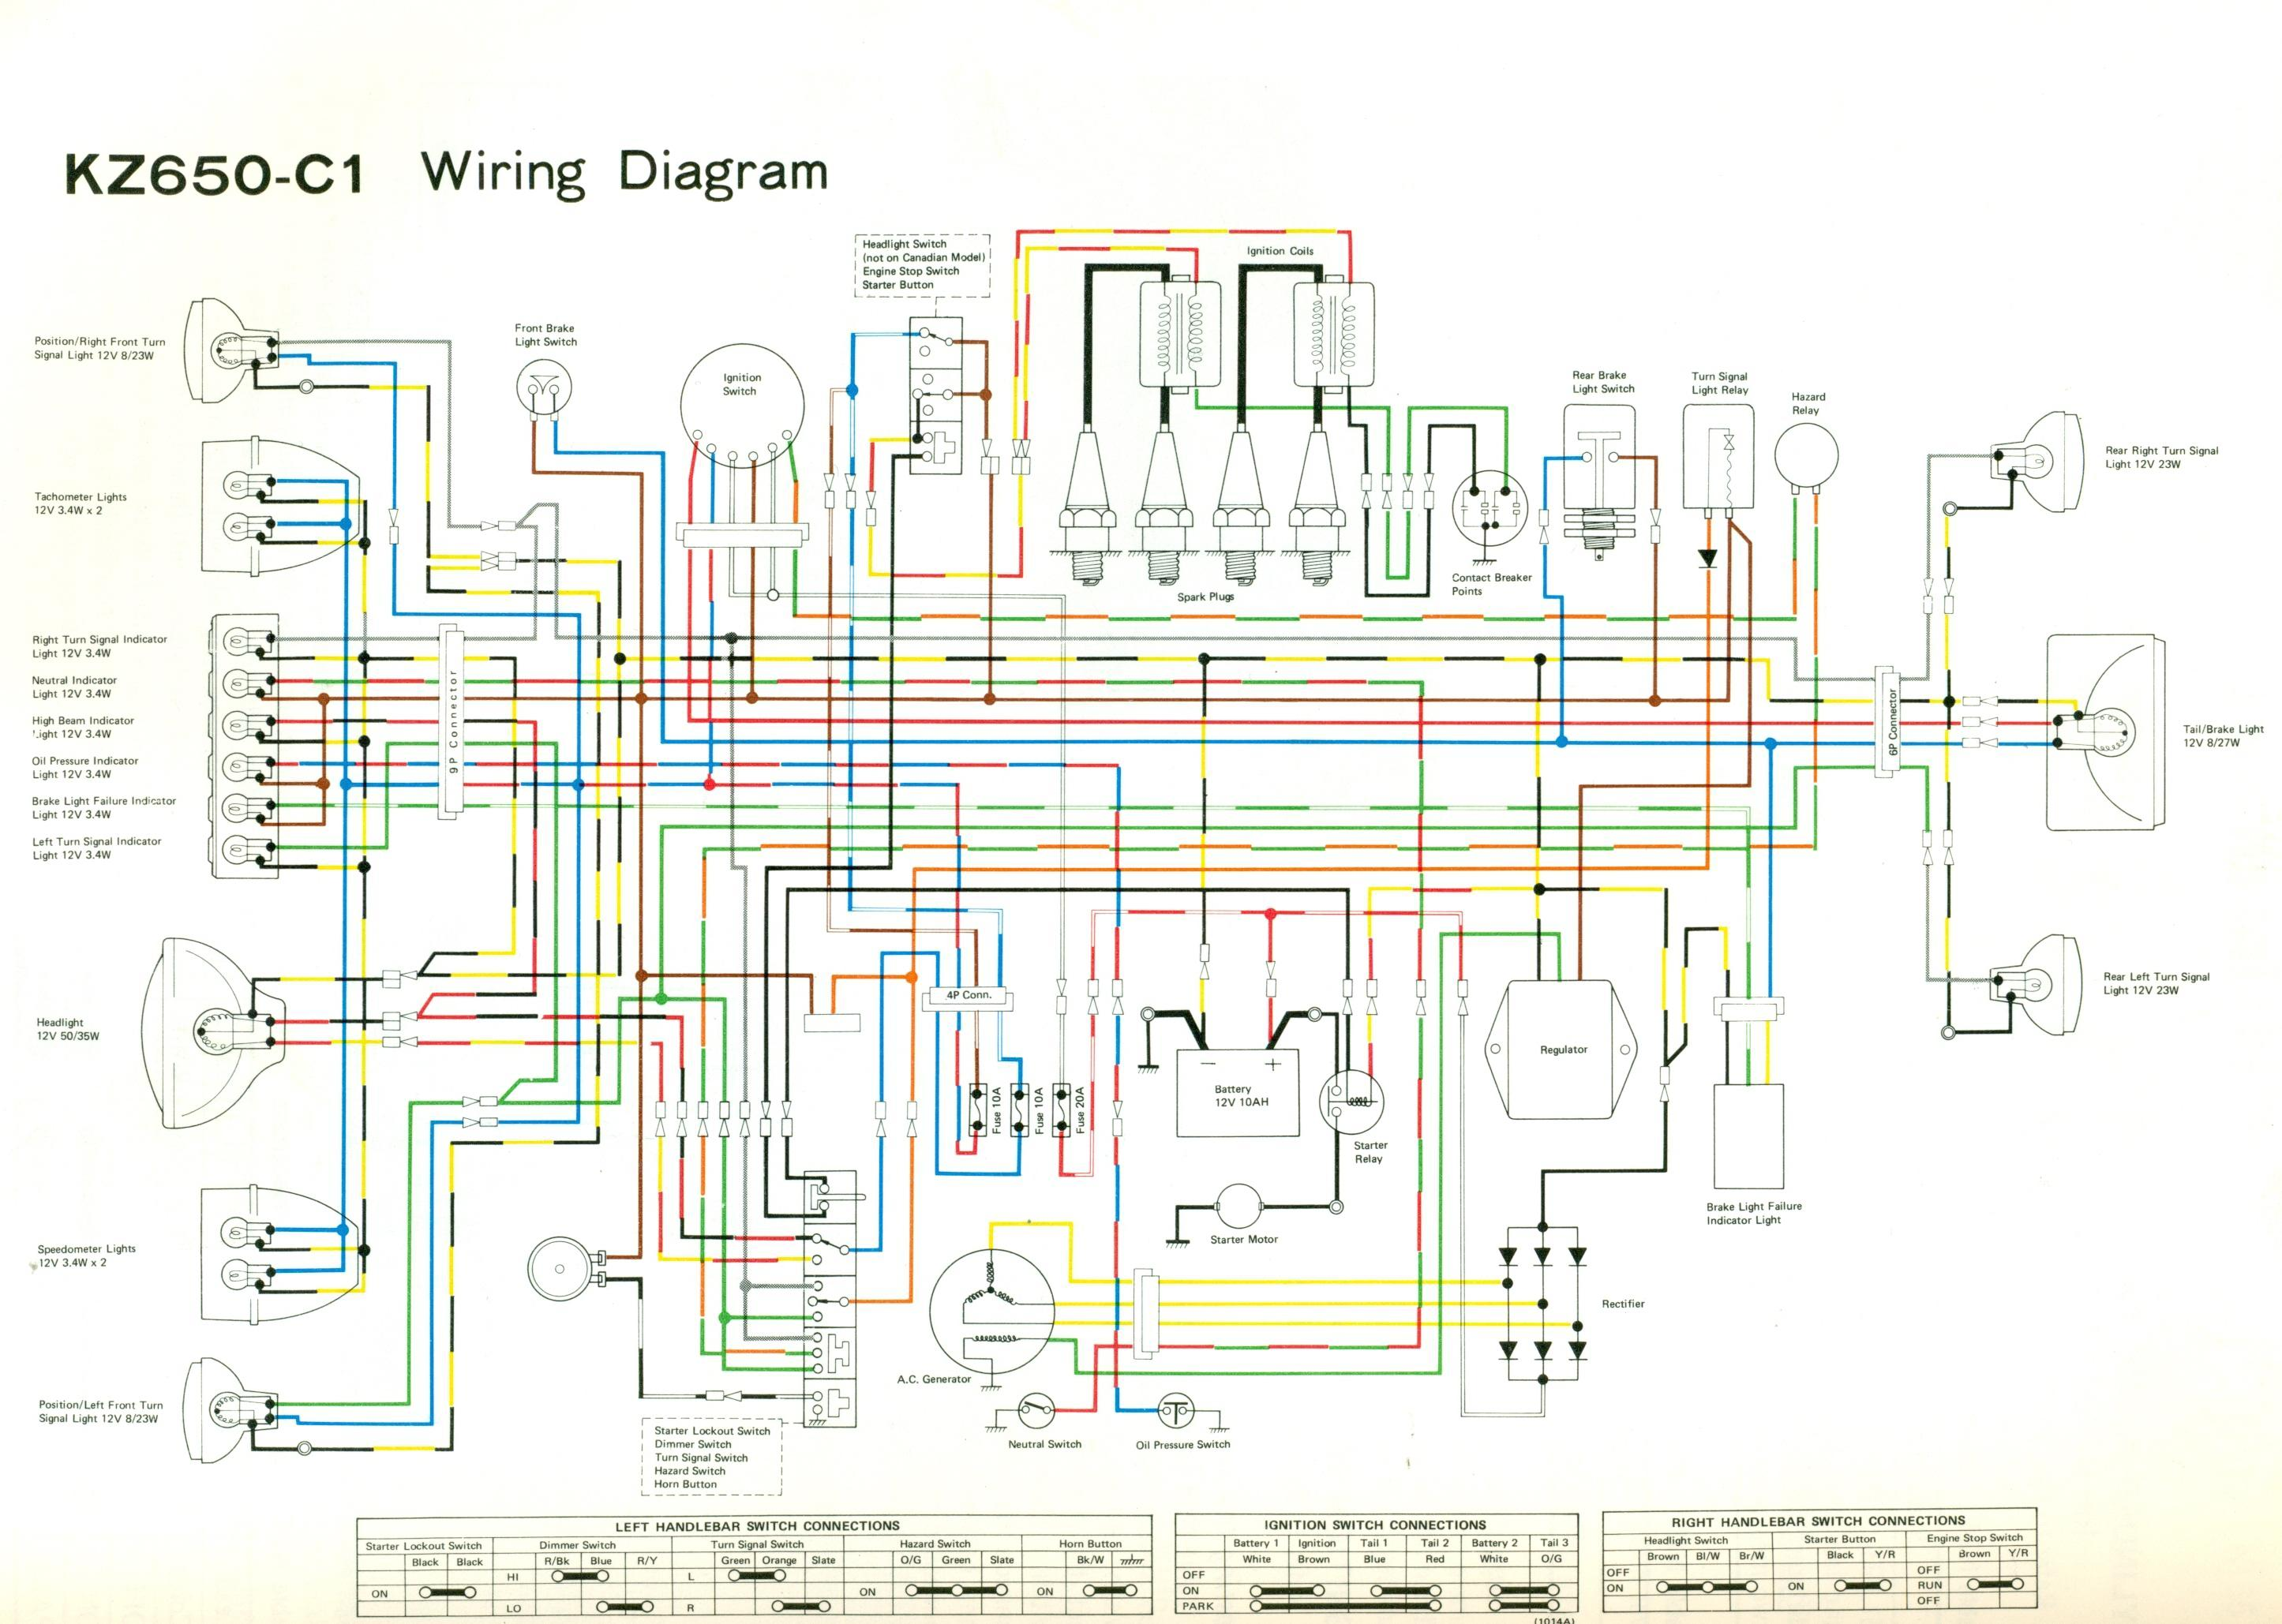 kl600 wiring diagram triton headphone jack wiring diagram triton kawasaki kl wiring diagram schematics and wiring diagrams kawasaki motorcycle and atv cdi units